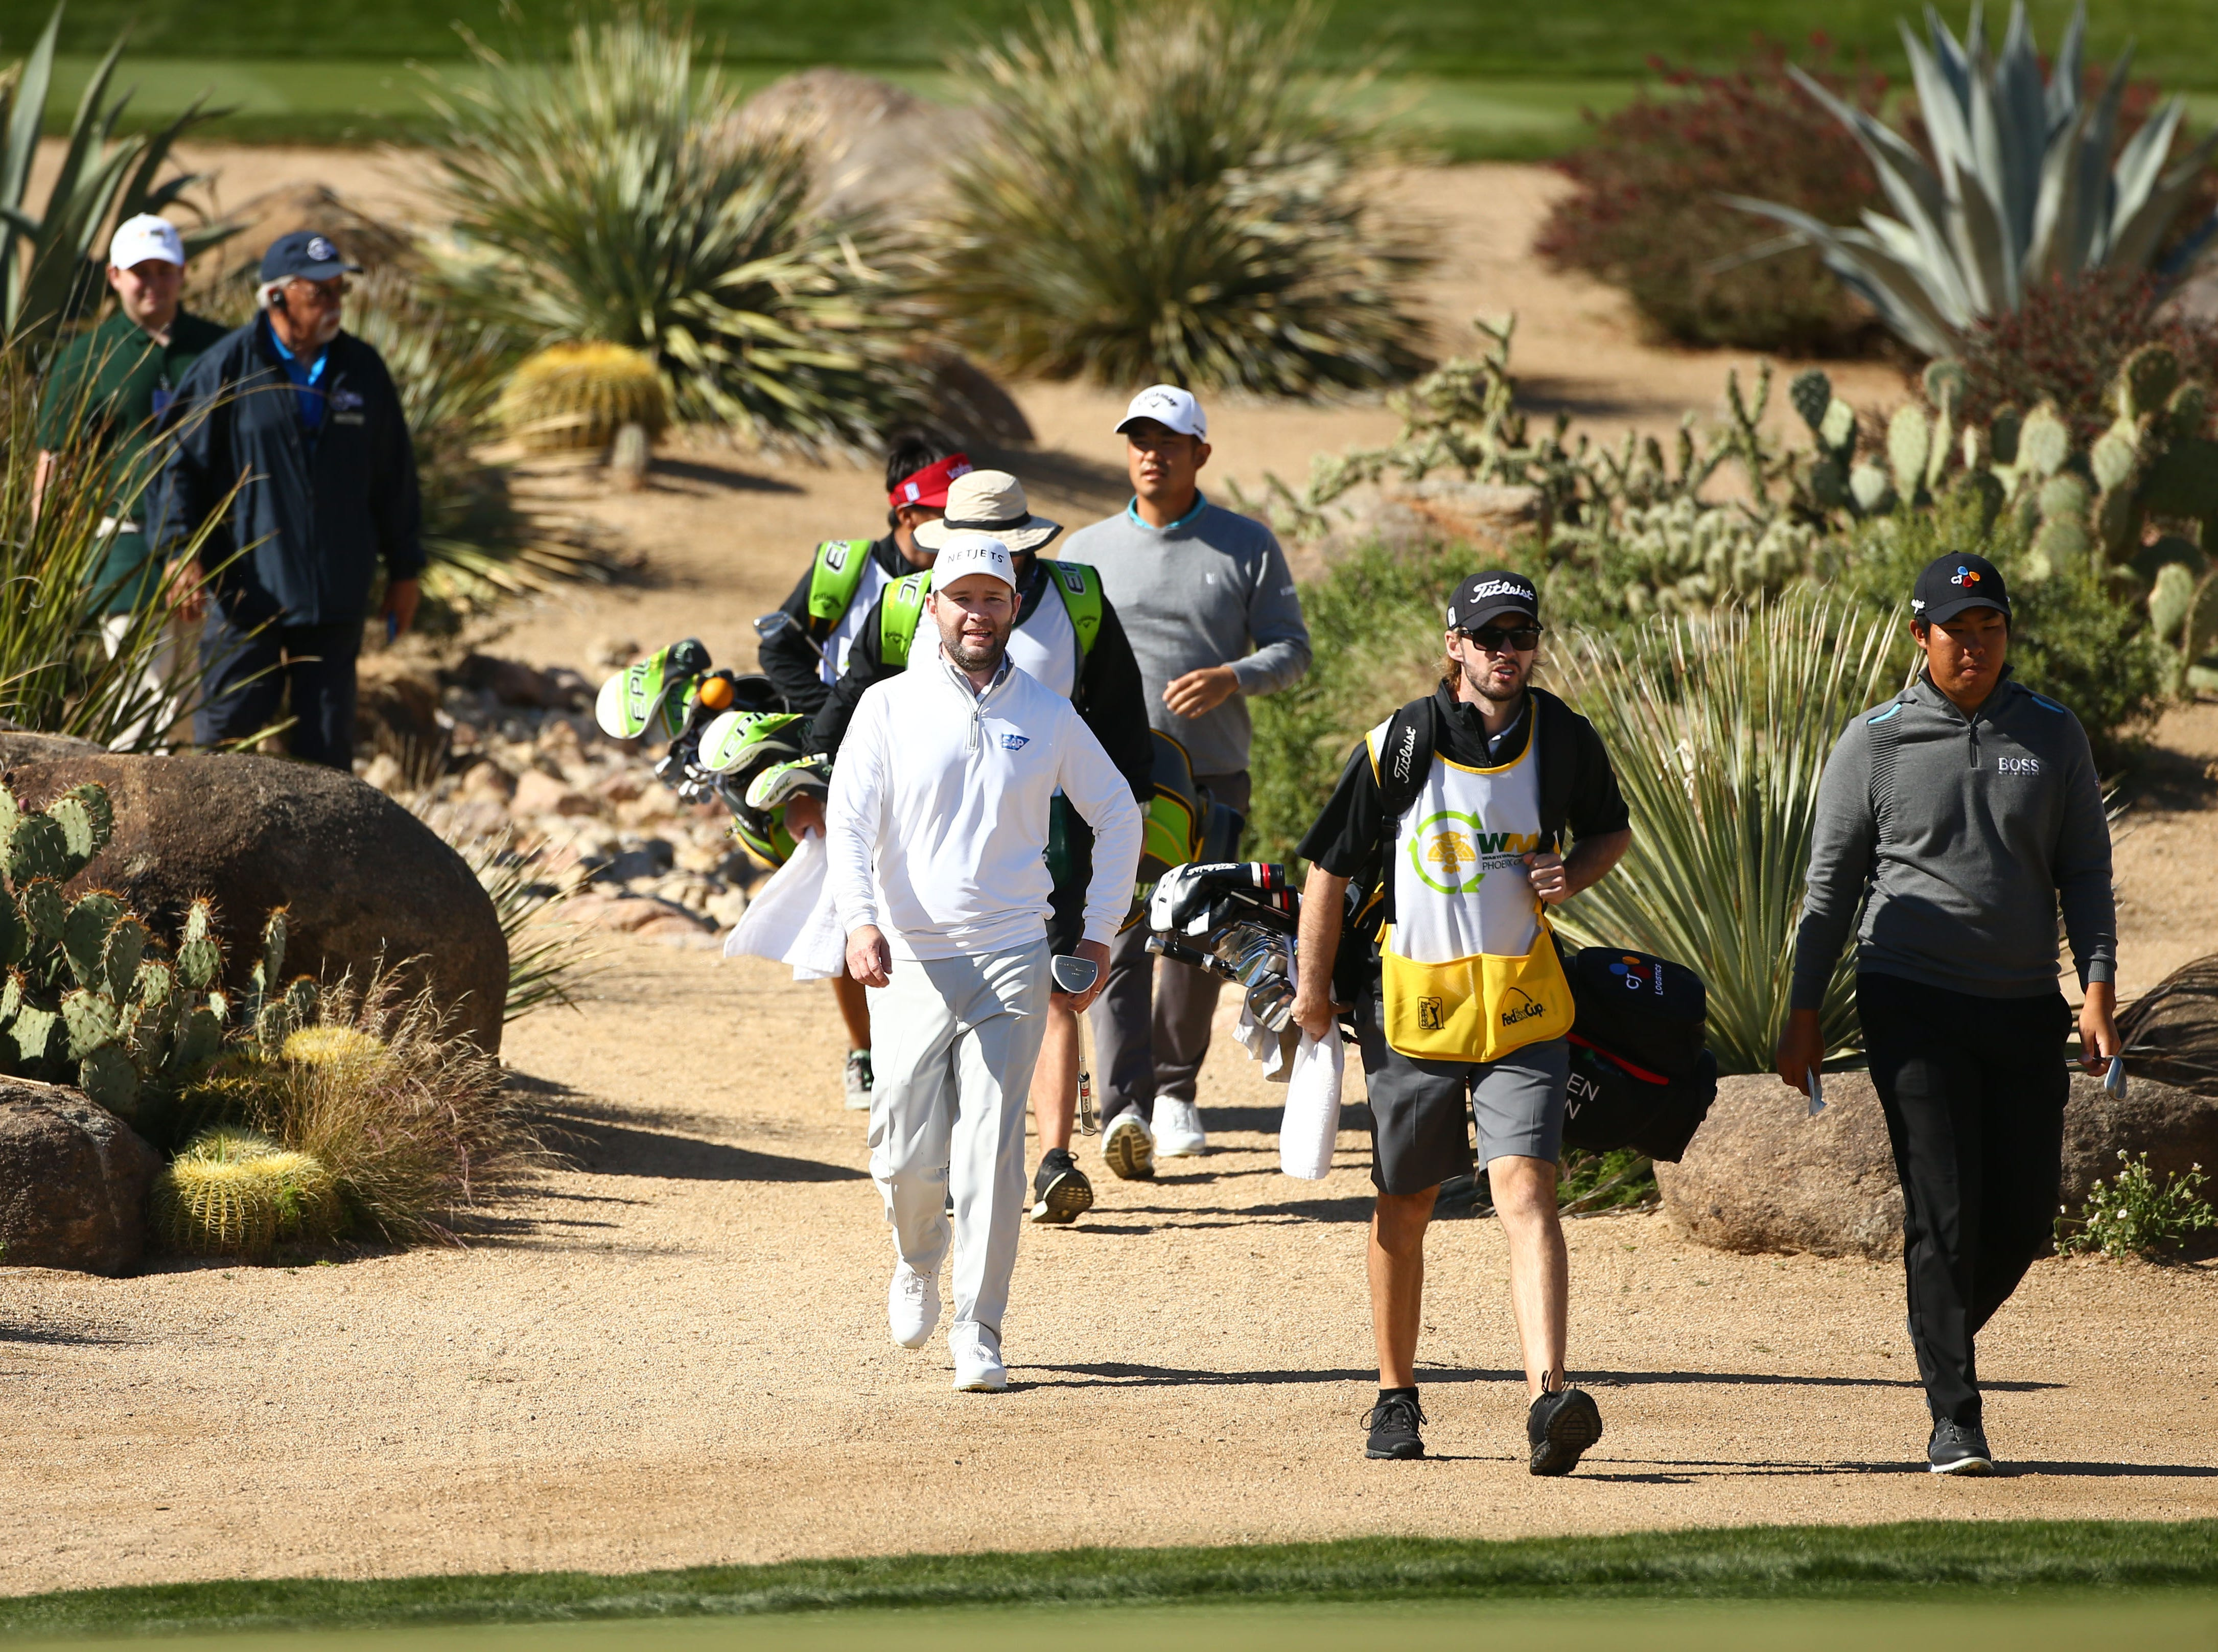 Branden Grace walks to the 16th green during second round action on Feb. 1 during the Waste Management Phoenix Open at the TPC Scottsdale Stadium Course.